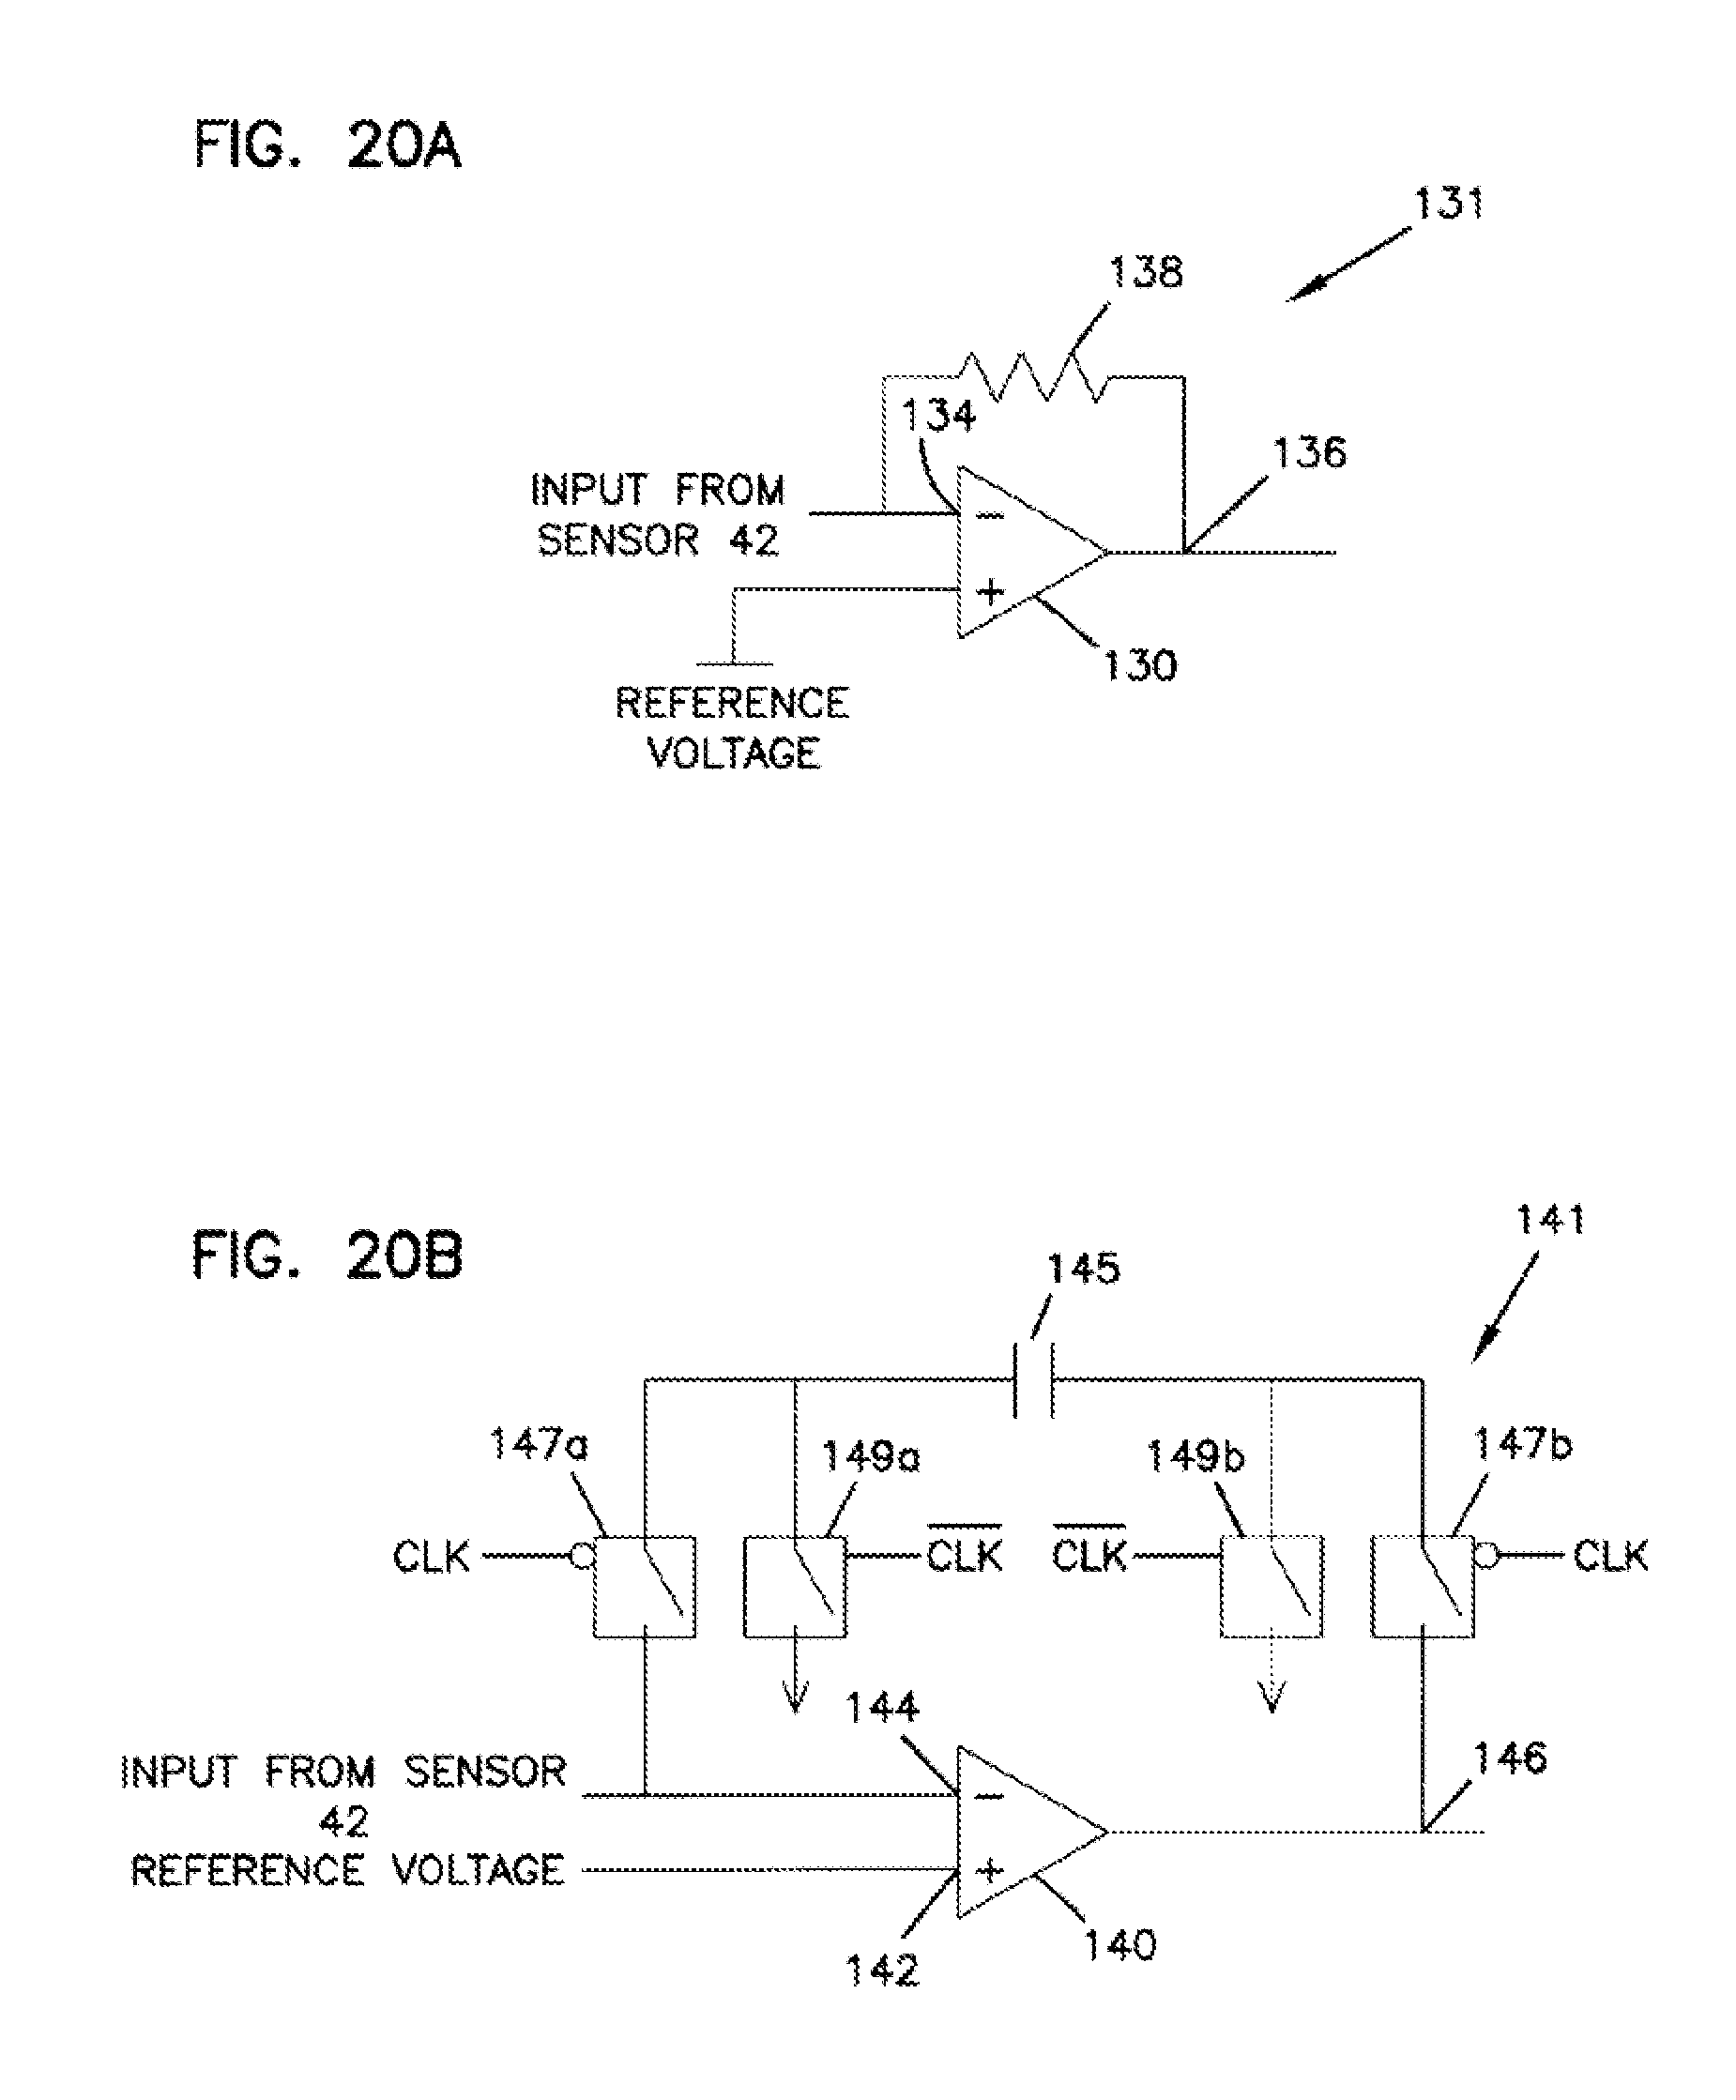 Boitier Electromagnetique Anti Humidite us20070161879a1 - analyte monitoring device and methods of